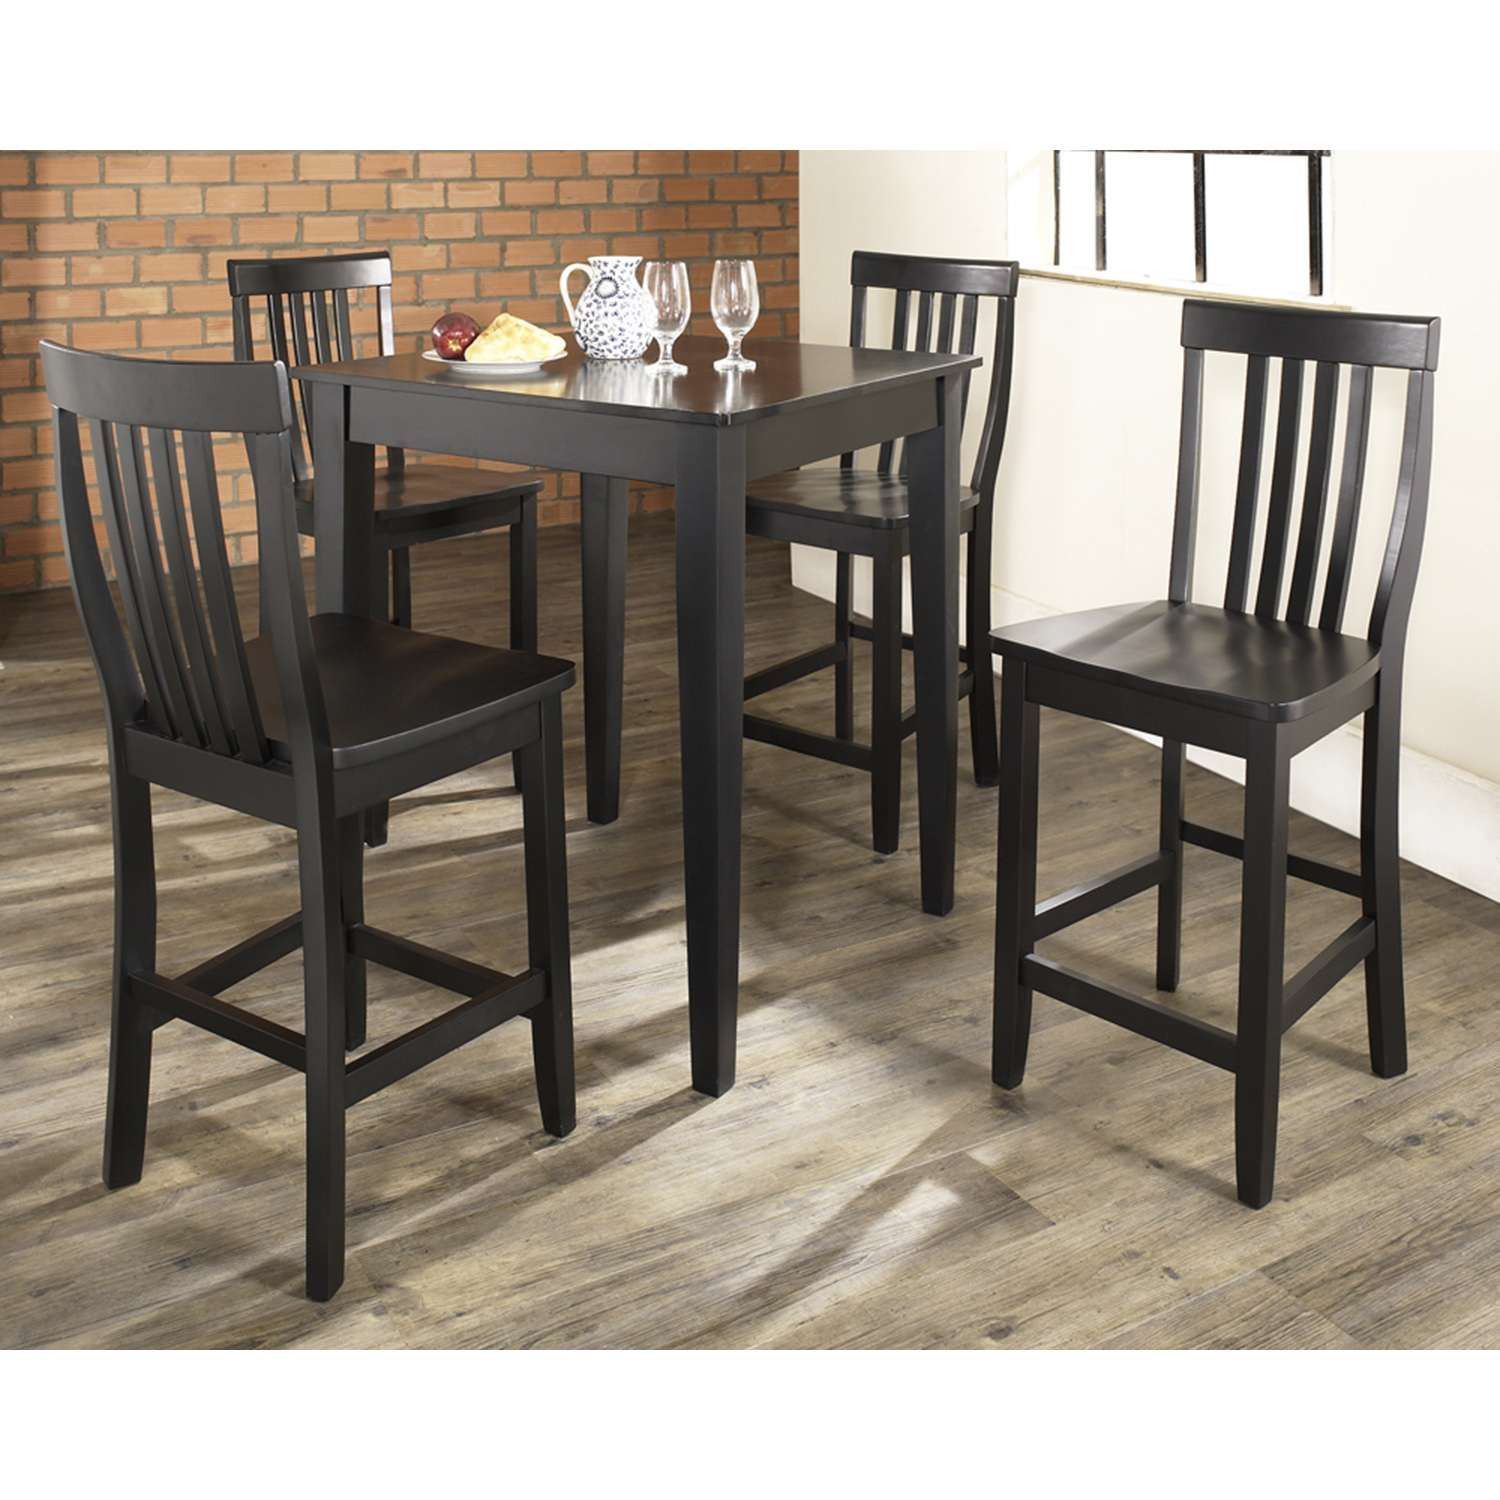 5-Piece Pub Dining Set - Tapered Table Legs, School House Stools, Black - CROS-KD520007BK